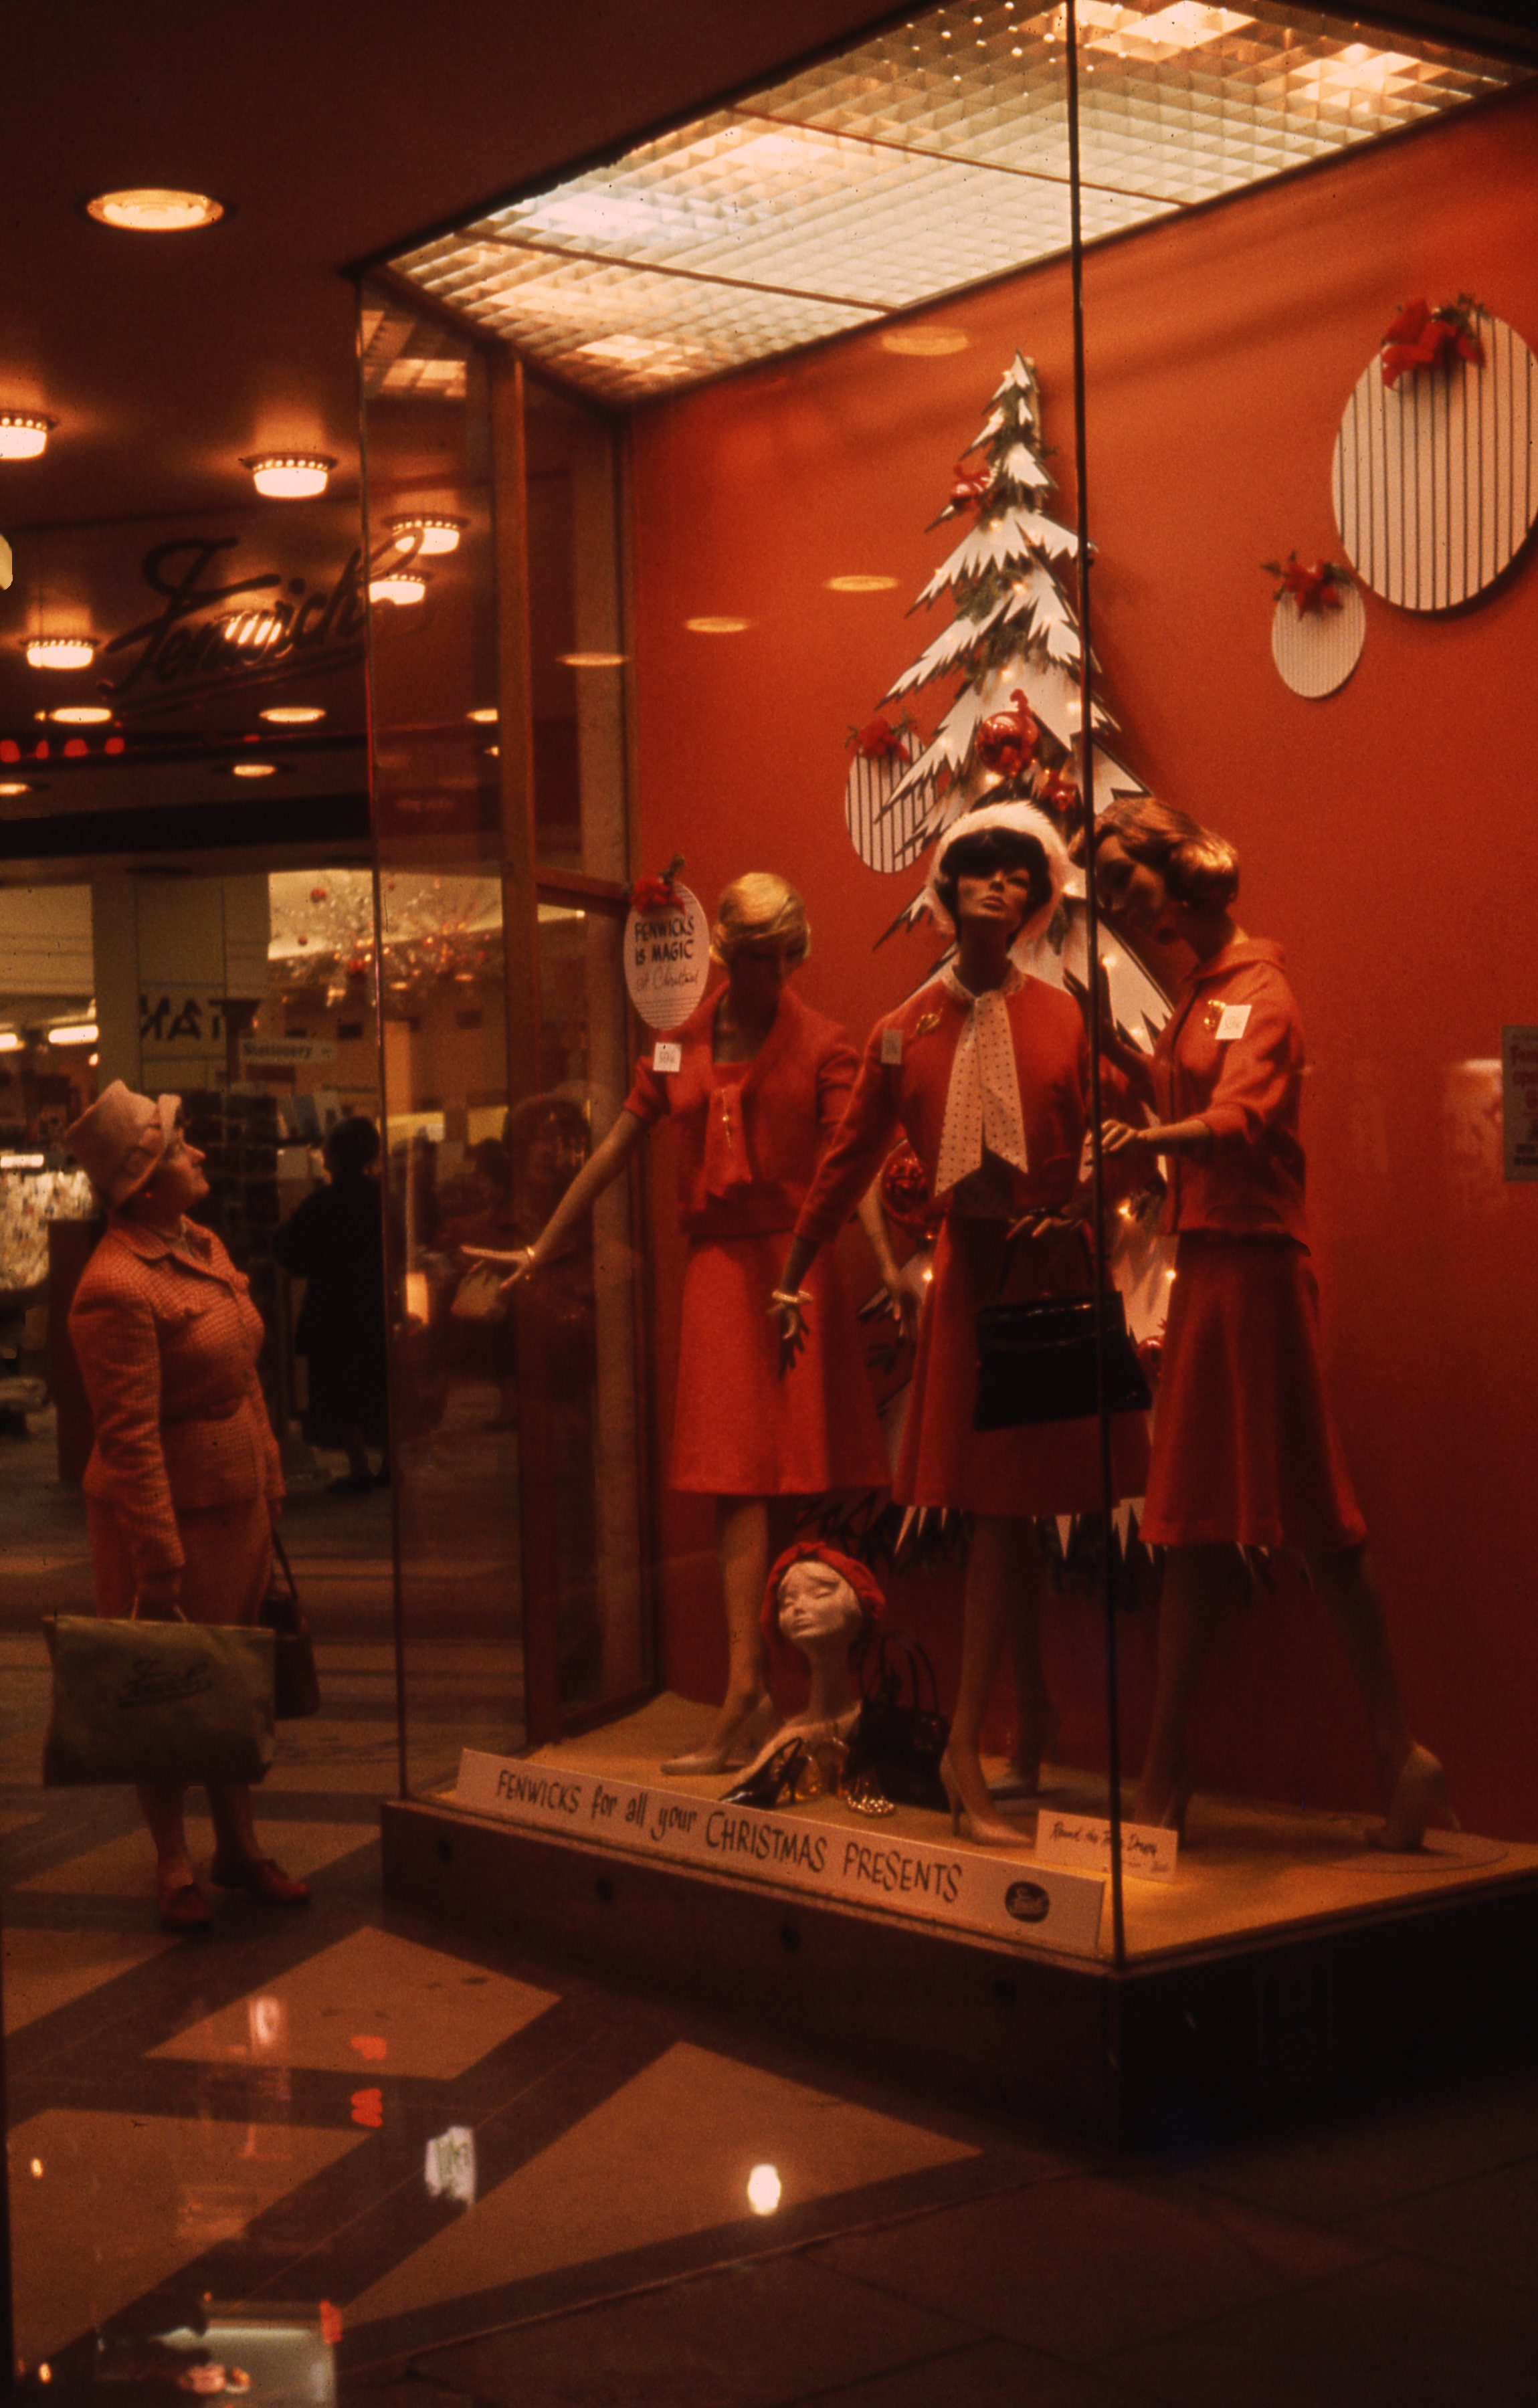 This photograph shows the display for 'Fenwicks, for all your Christmas presents.' in Fenwicks department store in Newcastle upon Tyne. This is a 35mm slide. It was taken in 1962.